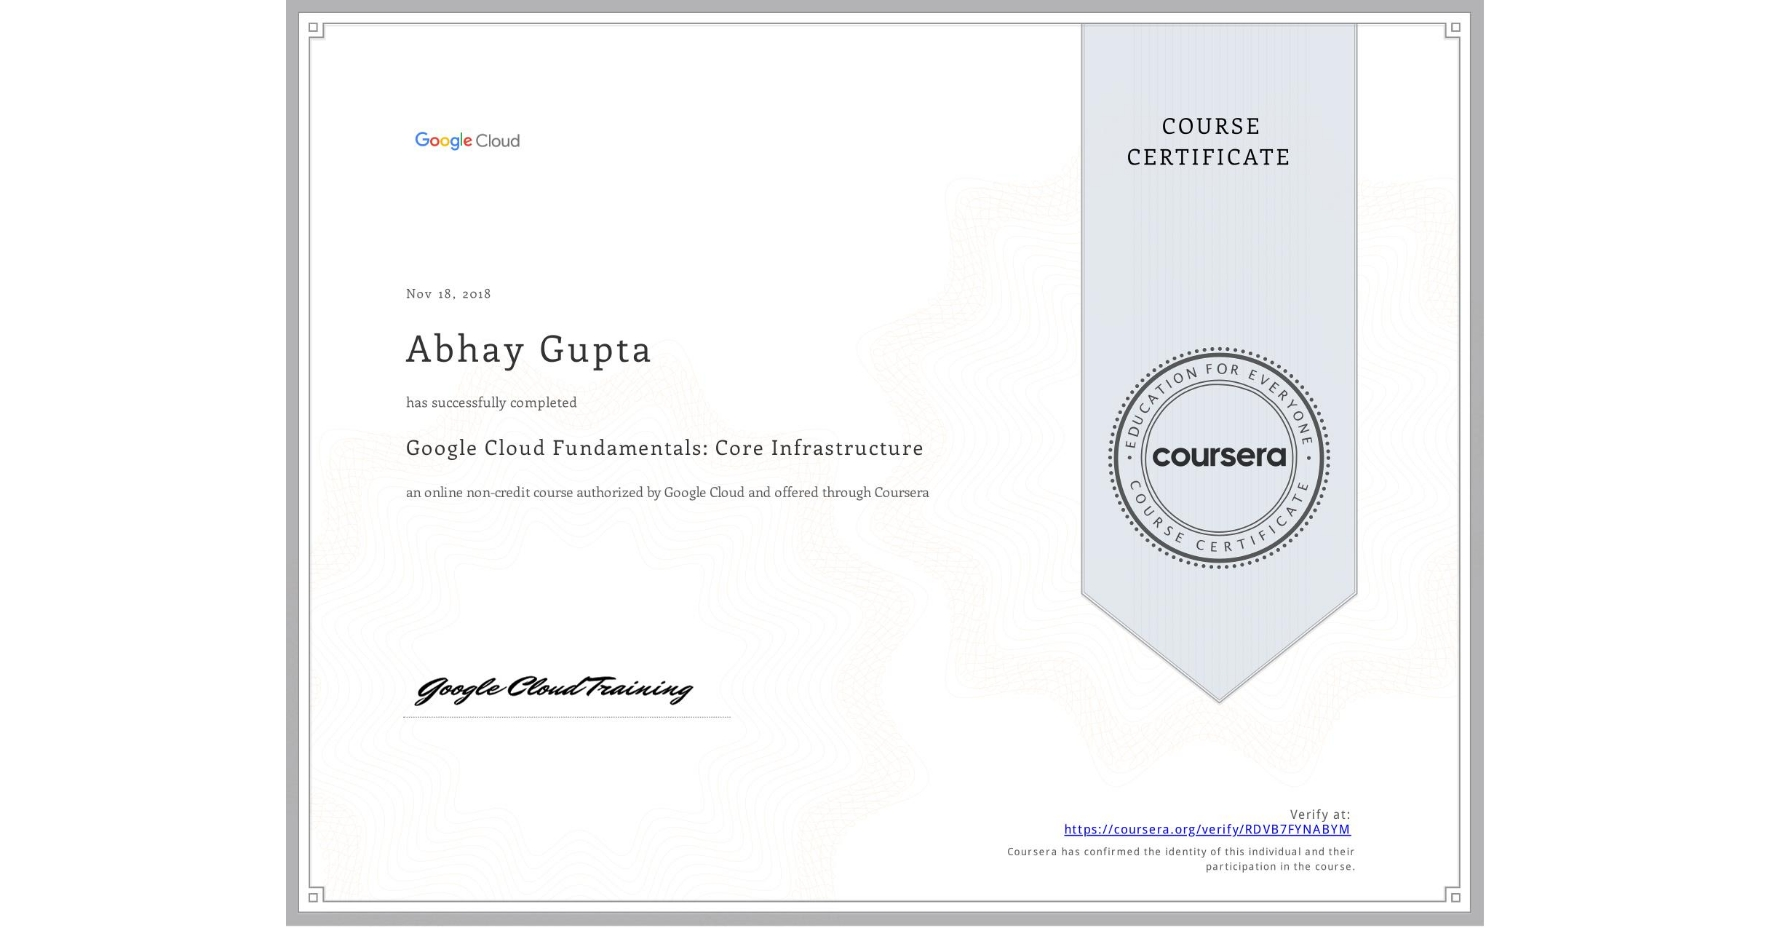 View certificate for Abhay Gupta, Google Cloud Fundamentals: Core Infrastructure, an online non-credit course authorized by Google Cloud and offered through Coursera